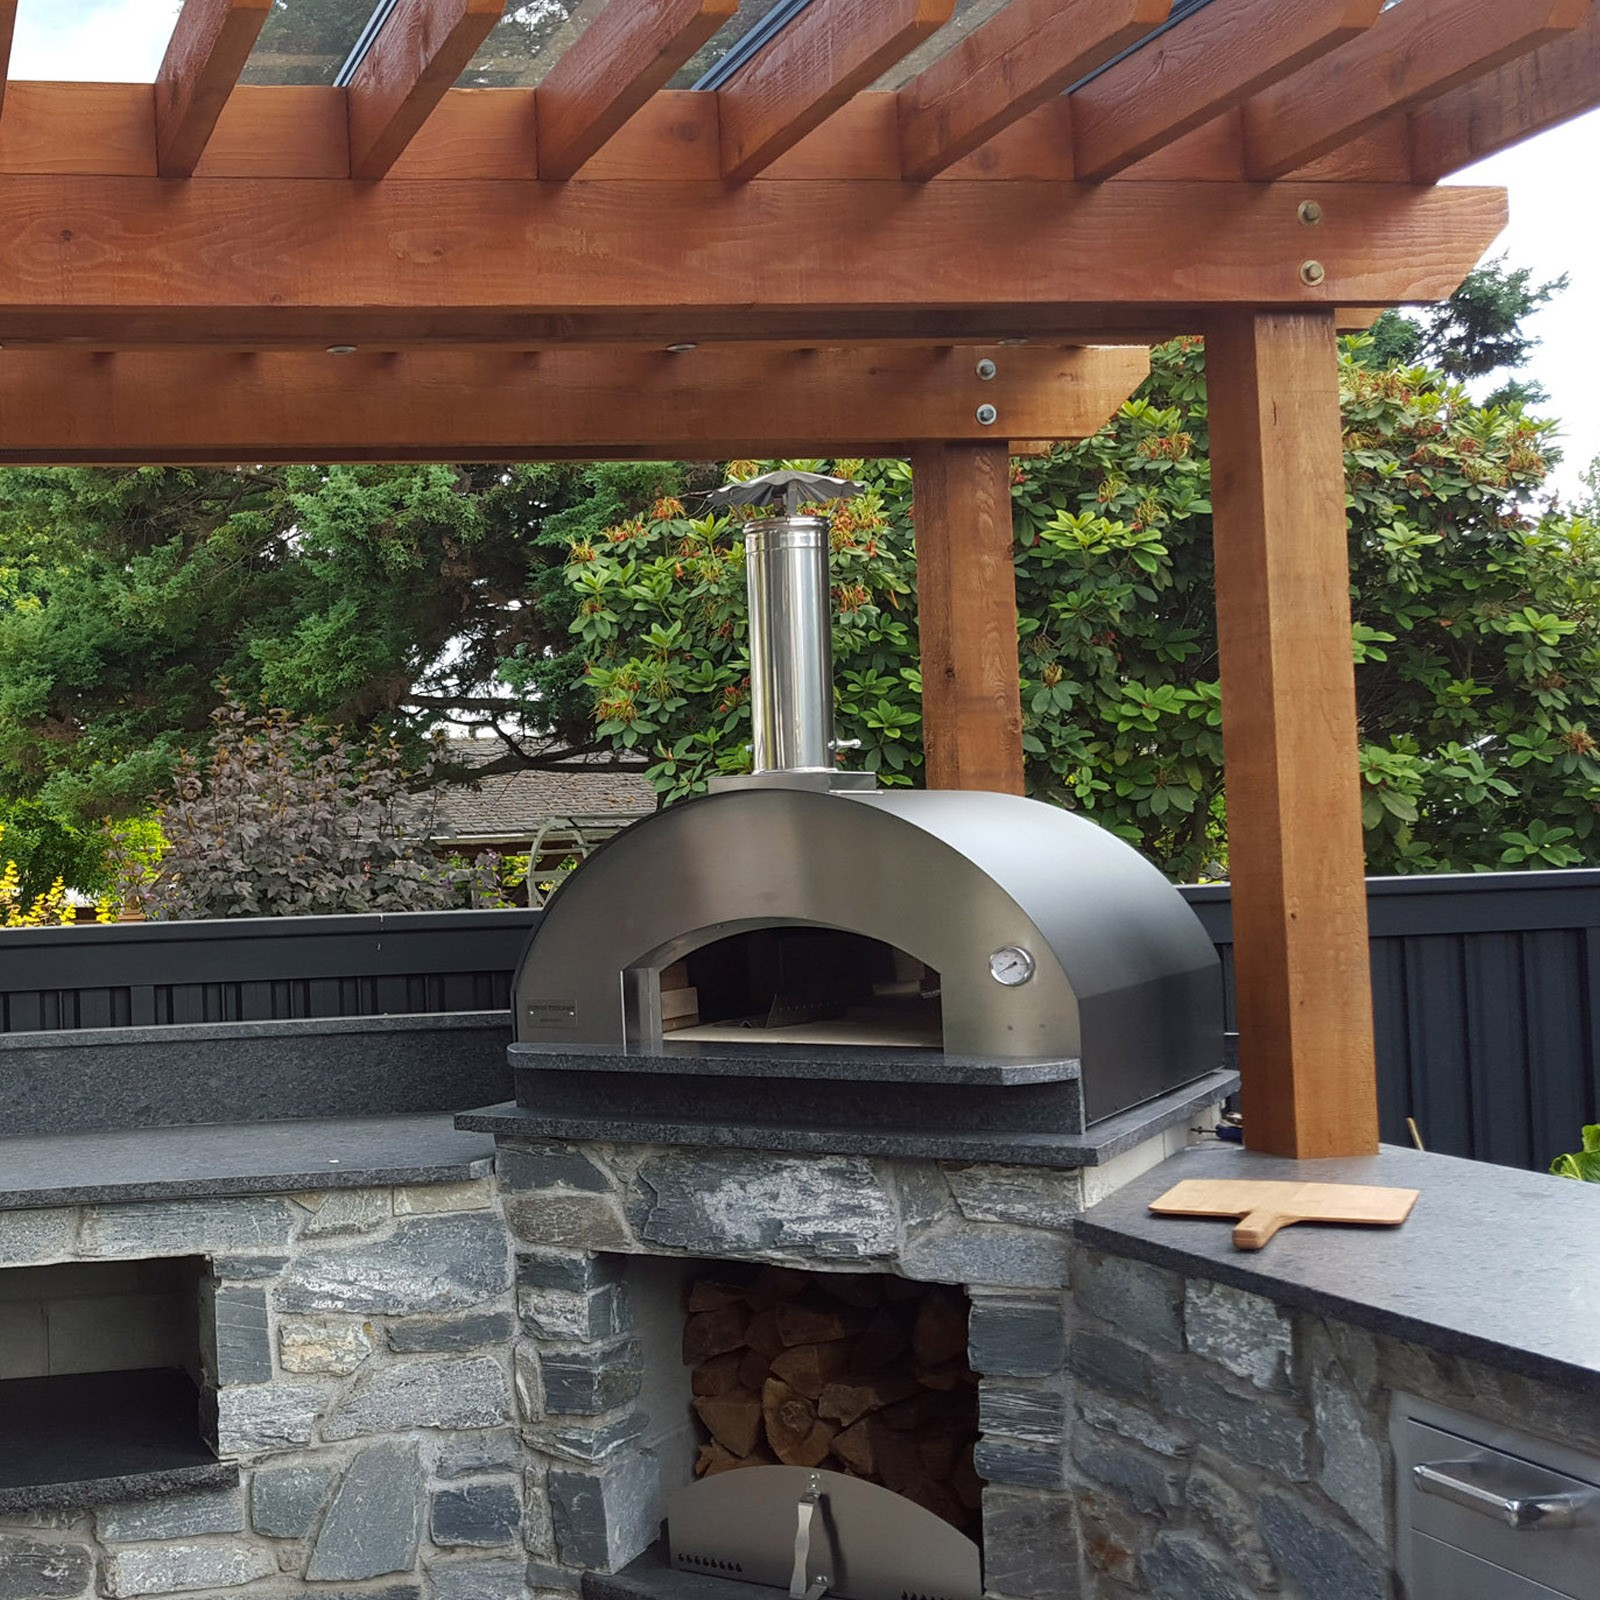 Home Wood Oven ~ Mangiafuoco wood pizza oven